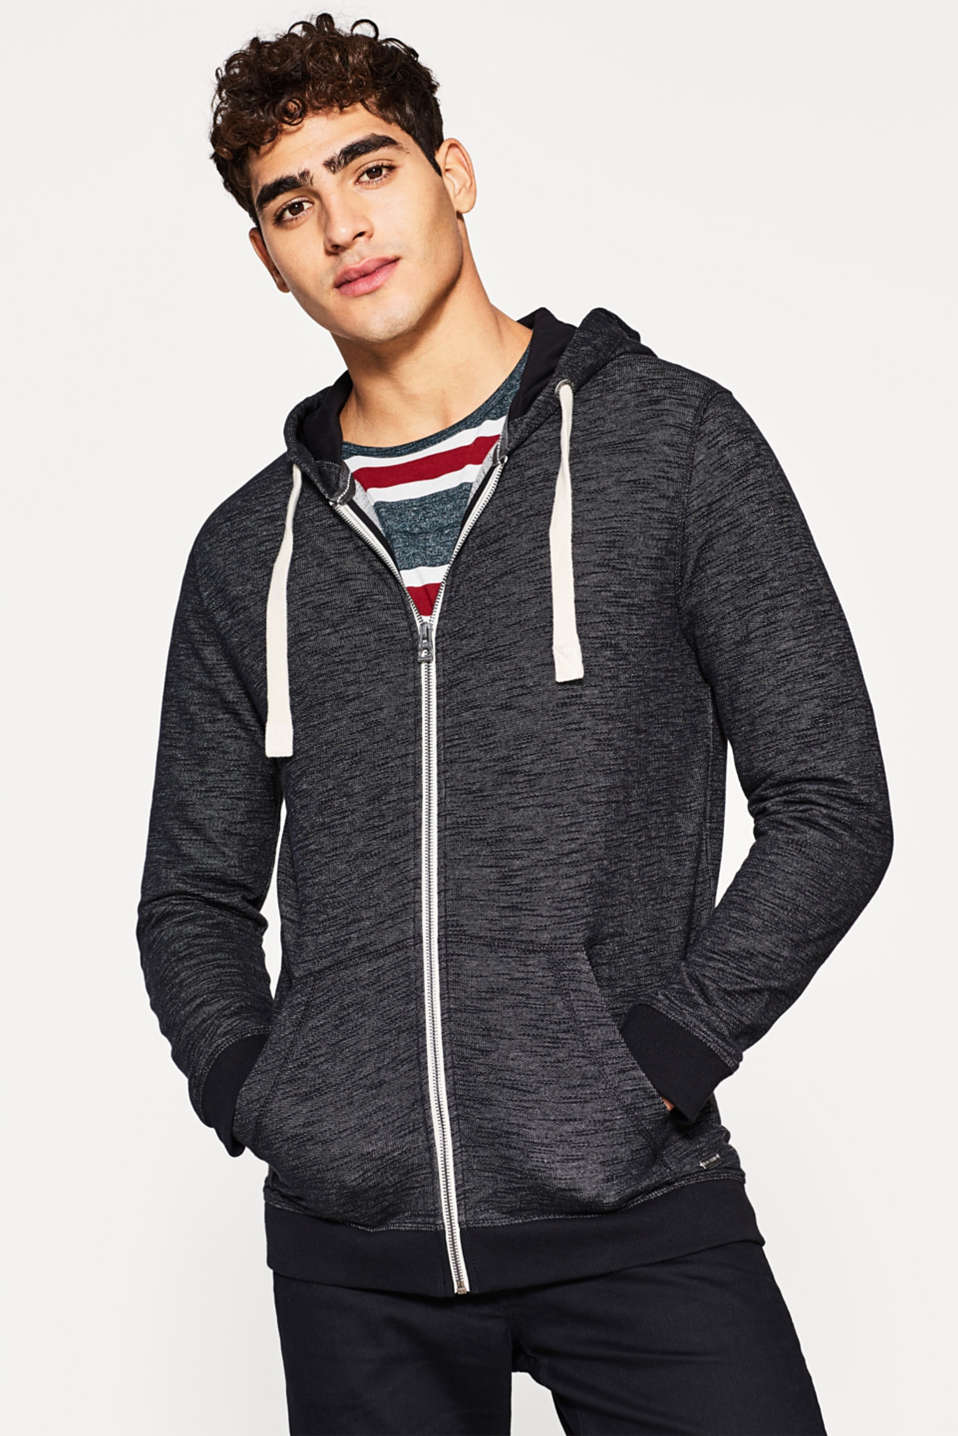 edc - Sweatshirt hoodie in 100% cotton